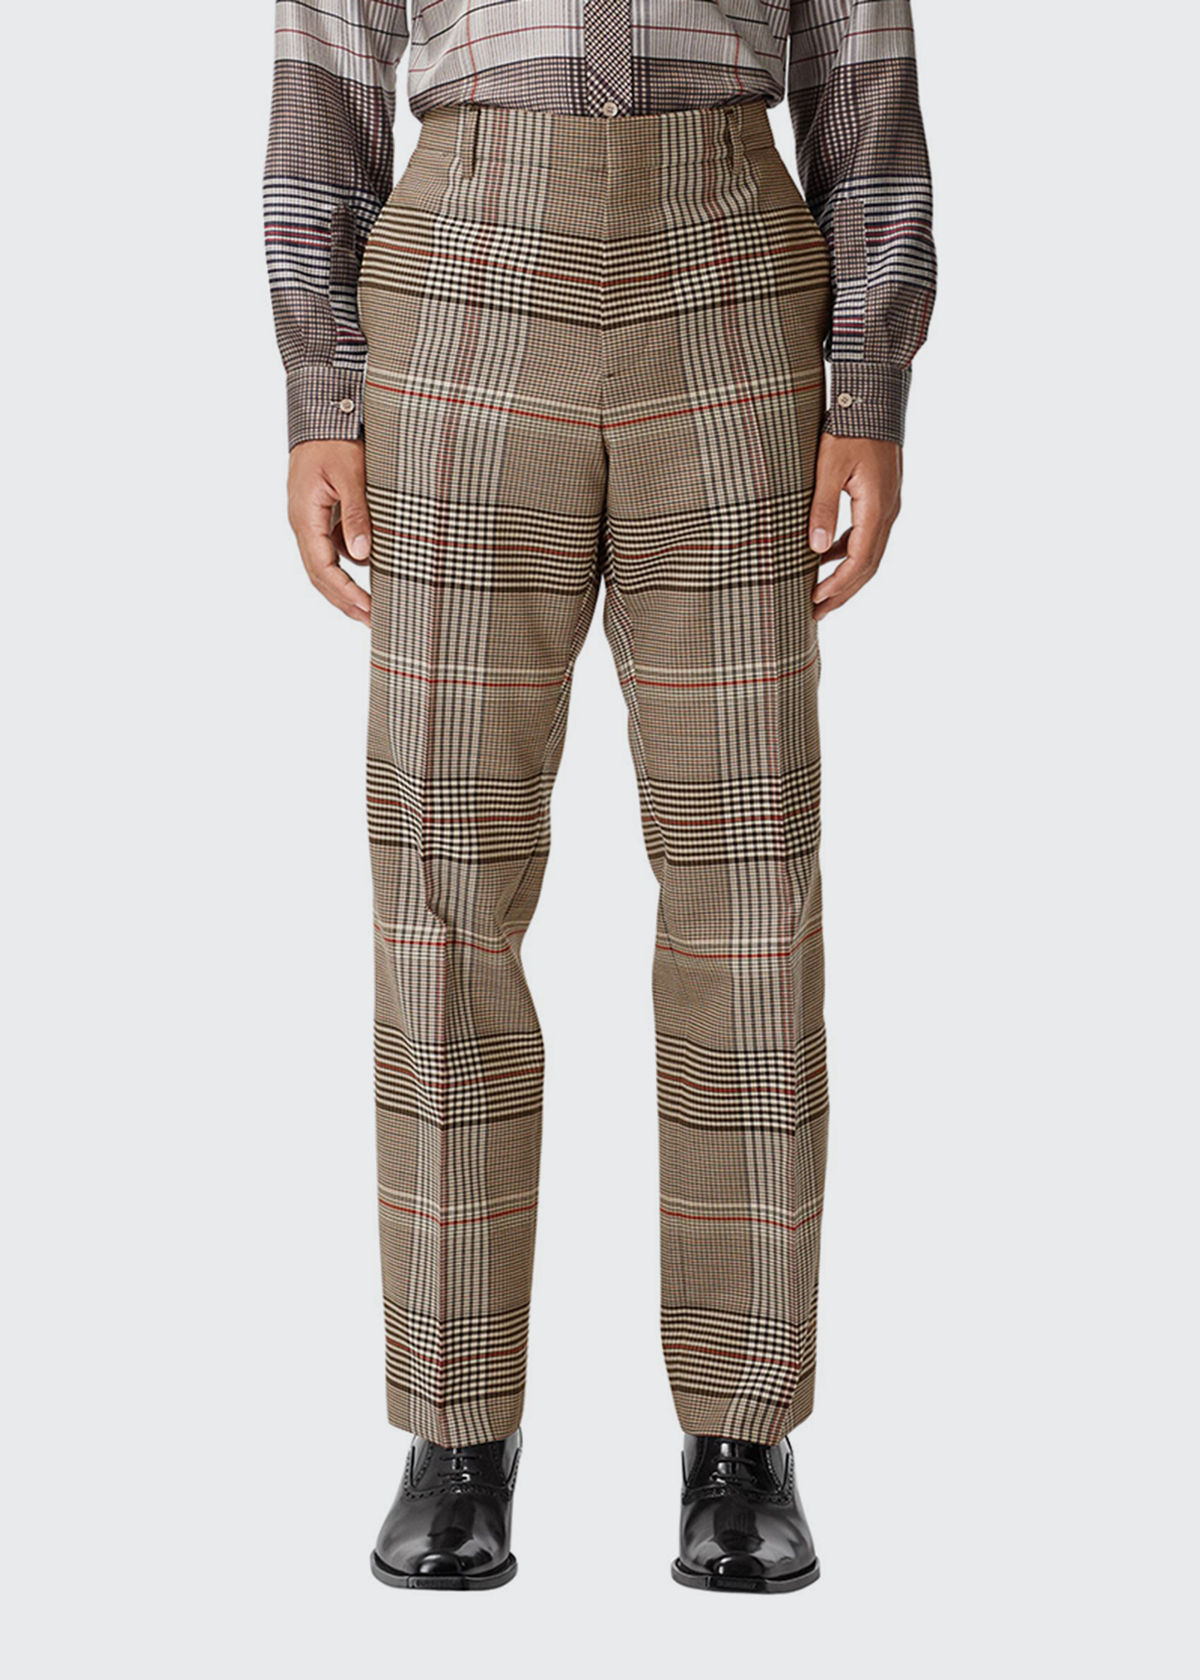 Burberry MEN'S GRAPH CHECK WOOL TROUSERS